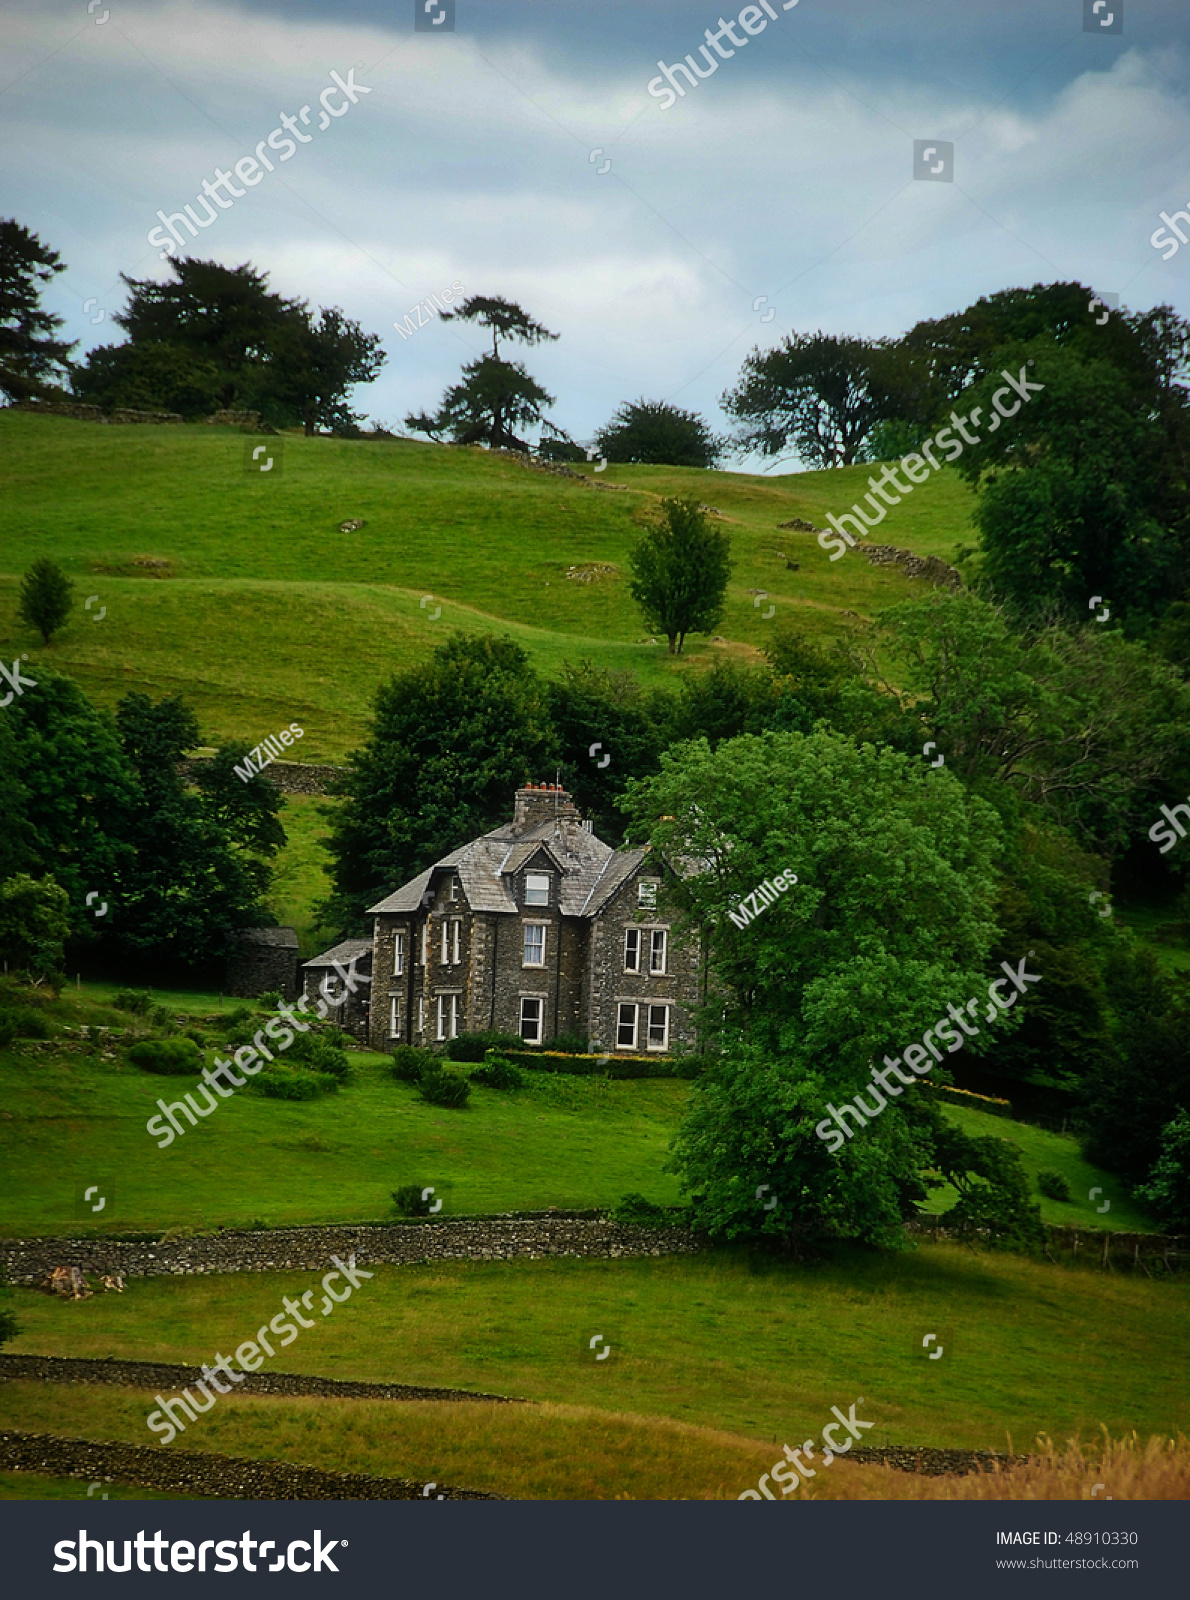 Stone Farmhouse Set In The English Countryside With Rolling Green Hills And Fences